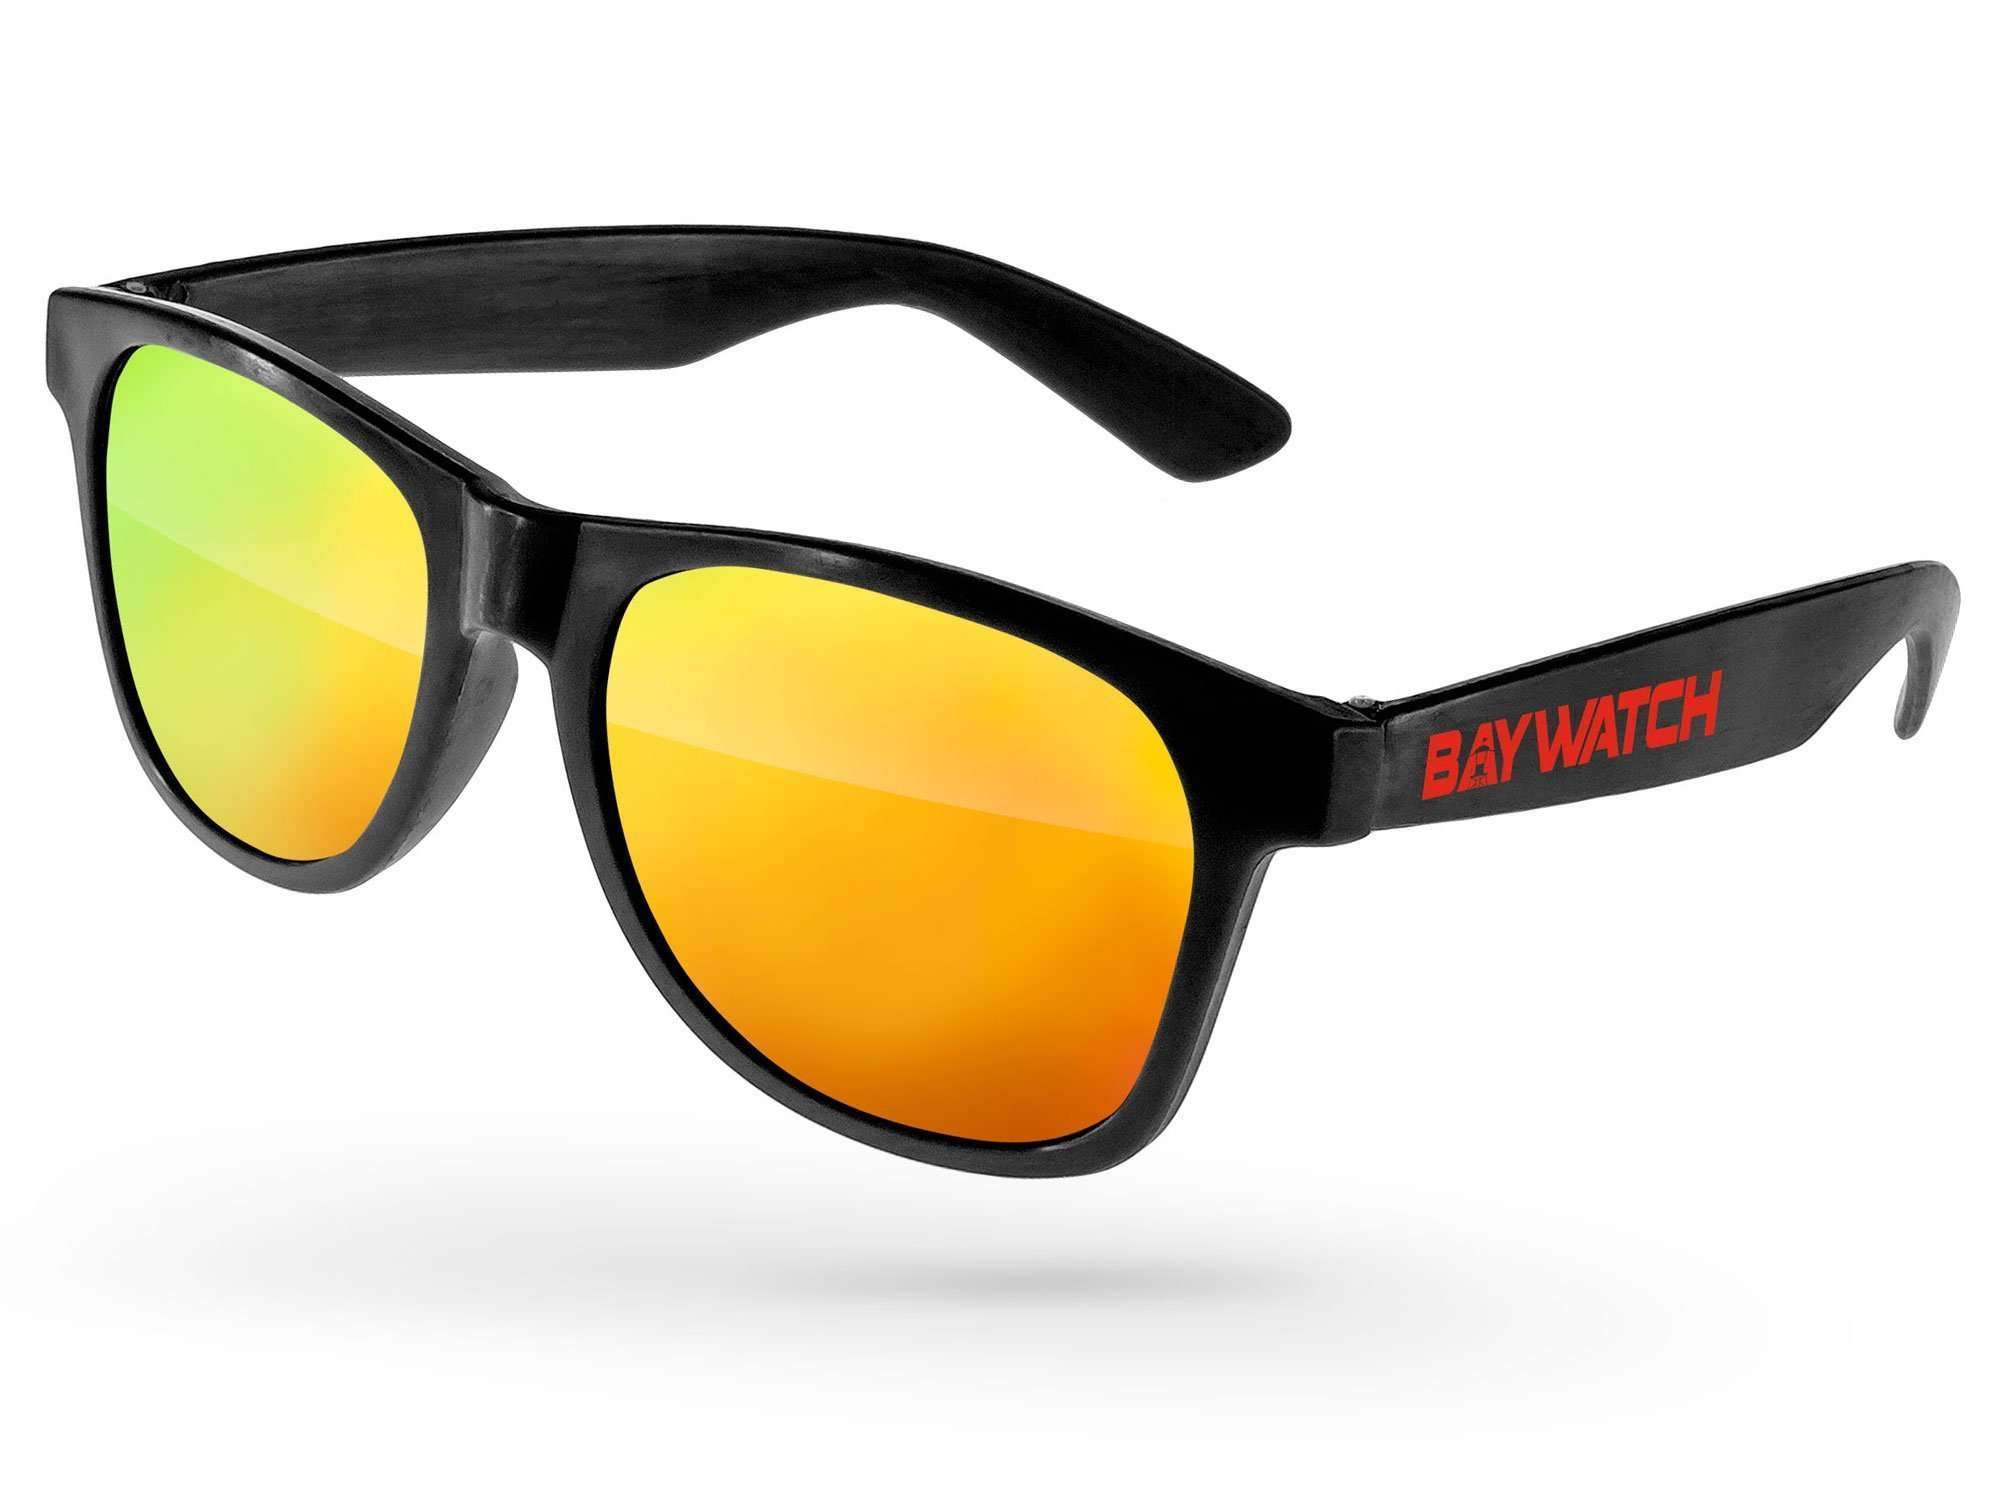 RM010-P - Value Retro Mirror Promotional Sunglasses w/ 1-color temple imprint